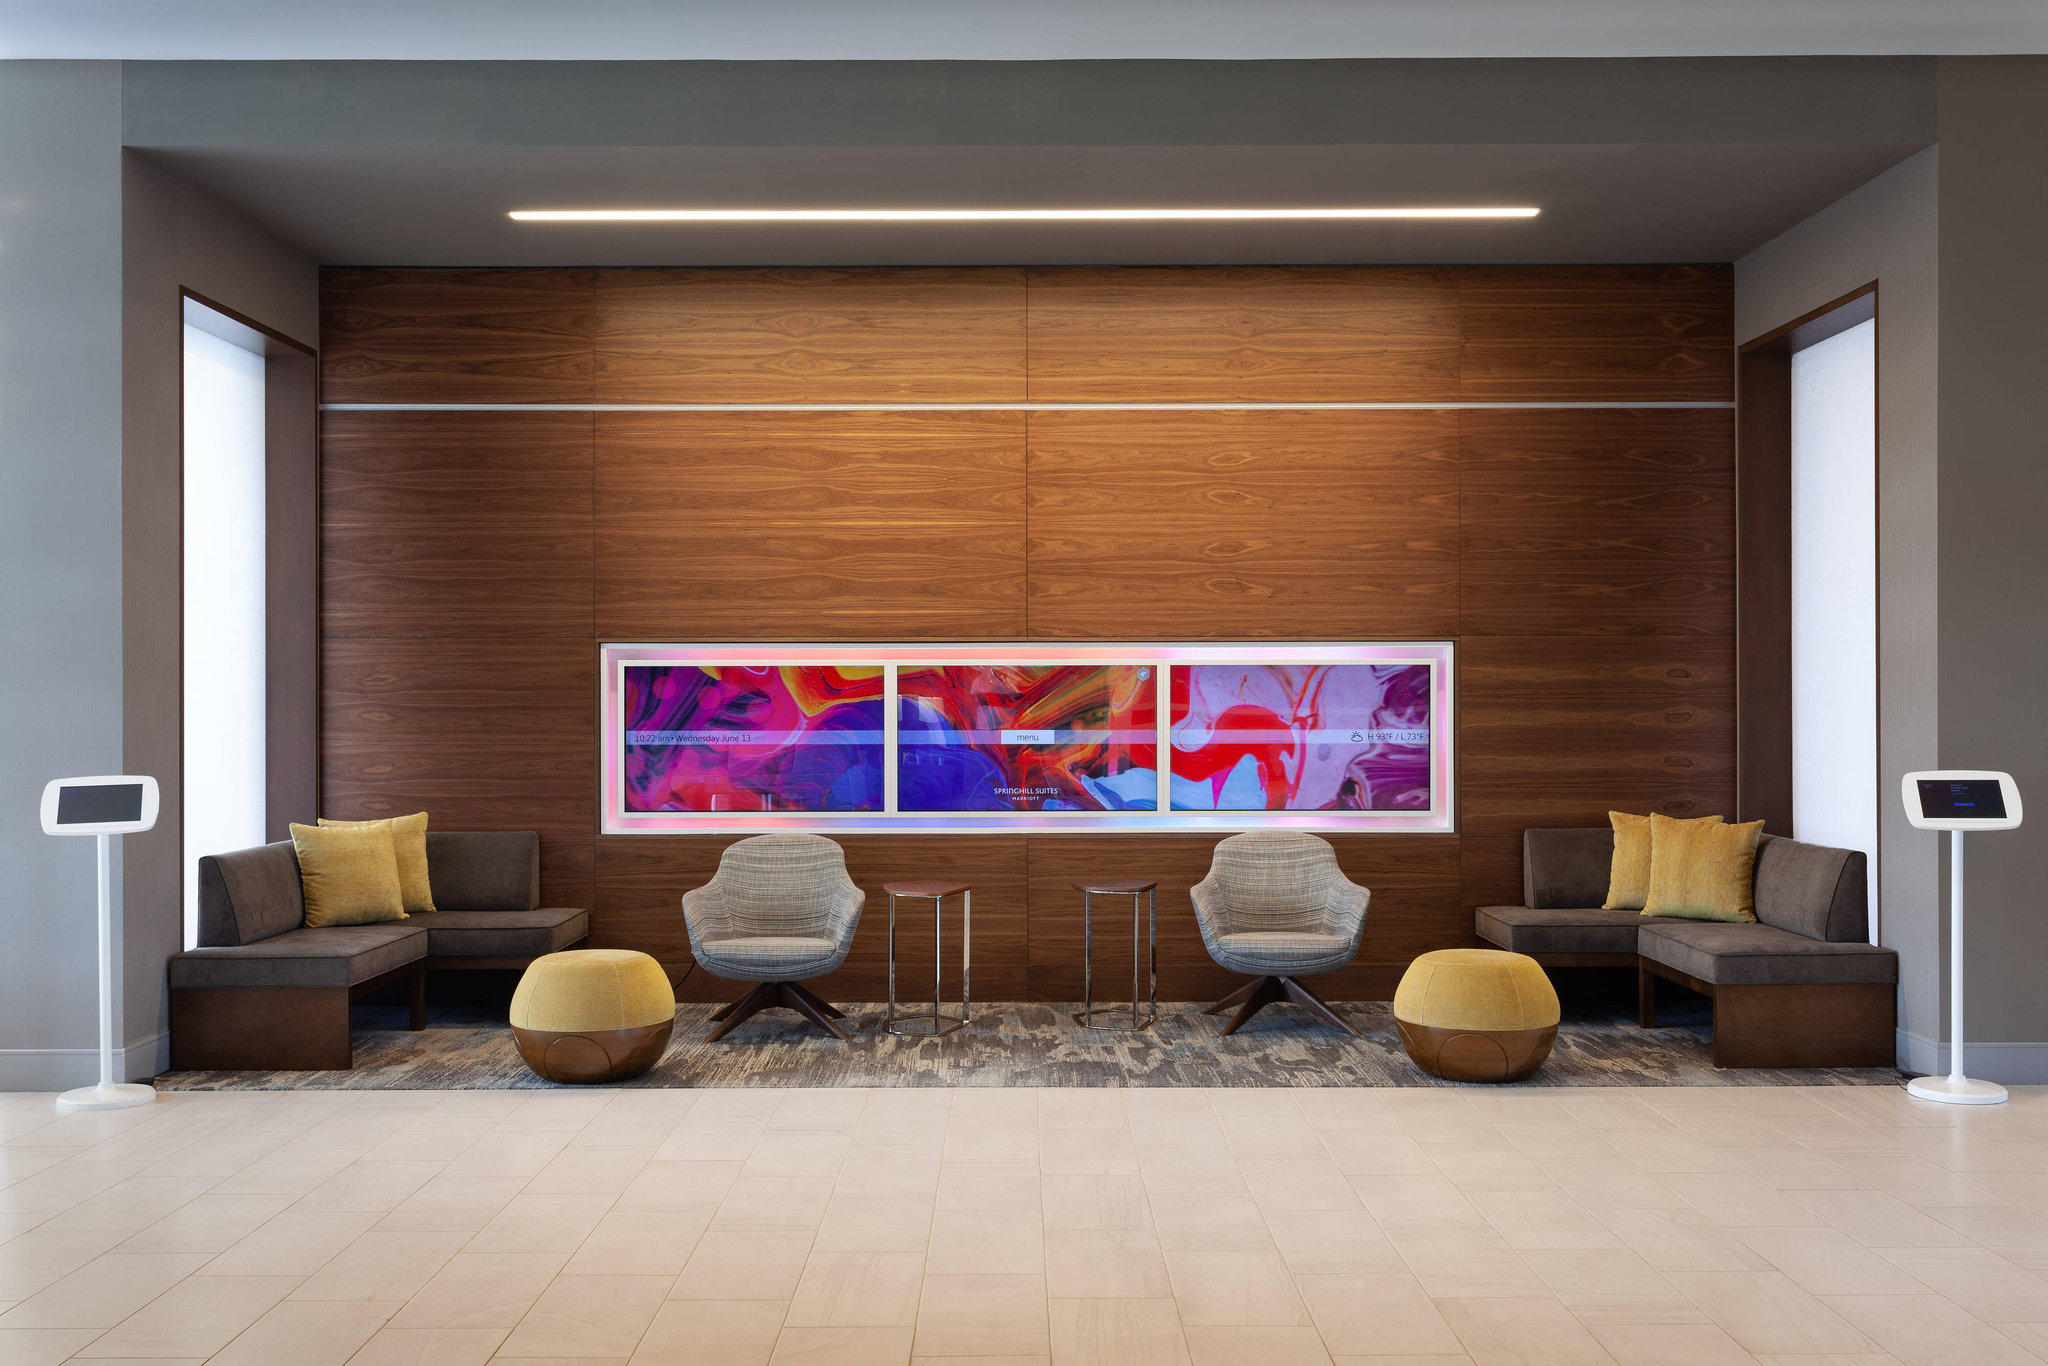 SpringHill Suites by Marriott Orlando at Millenia